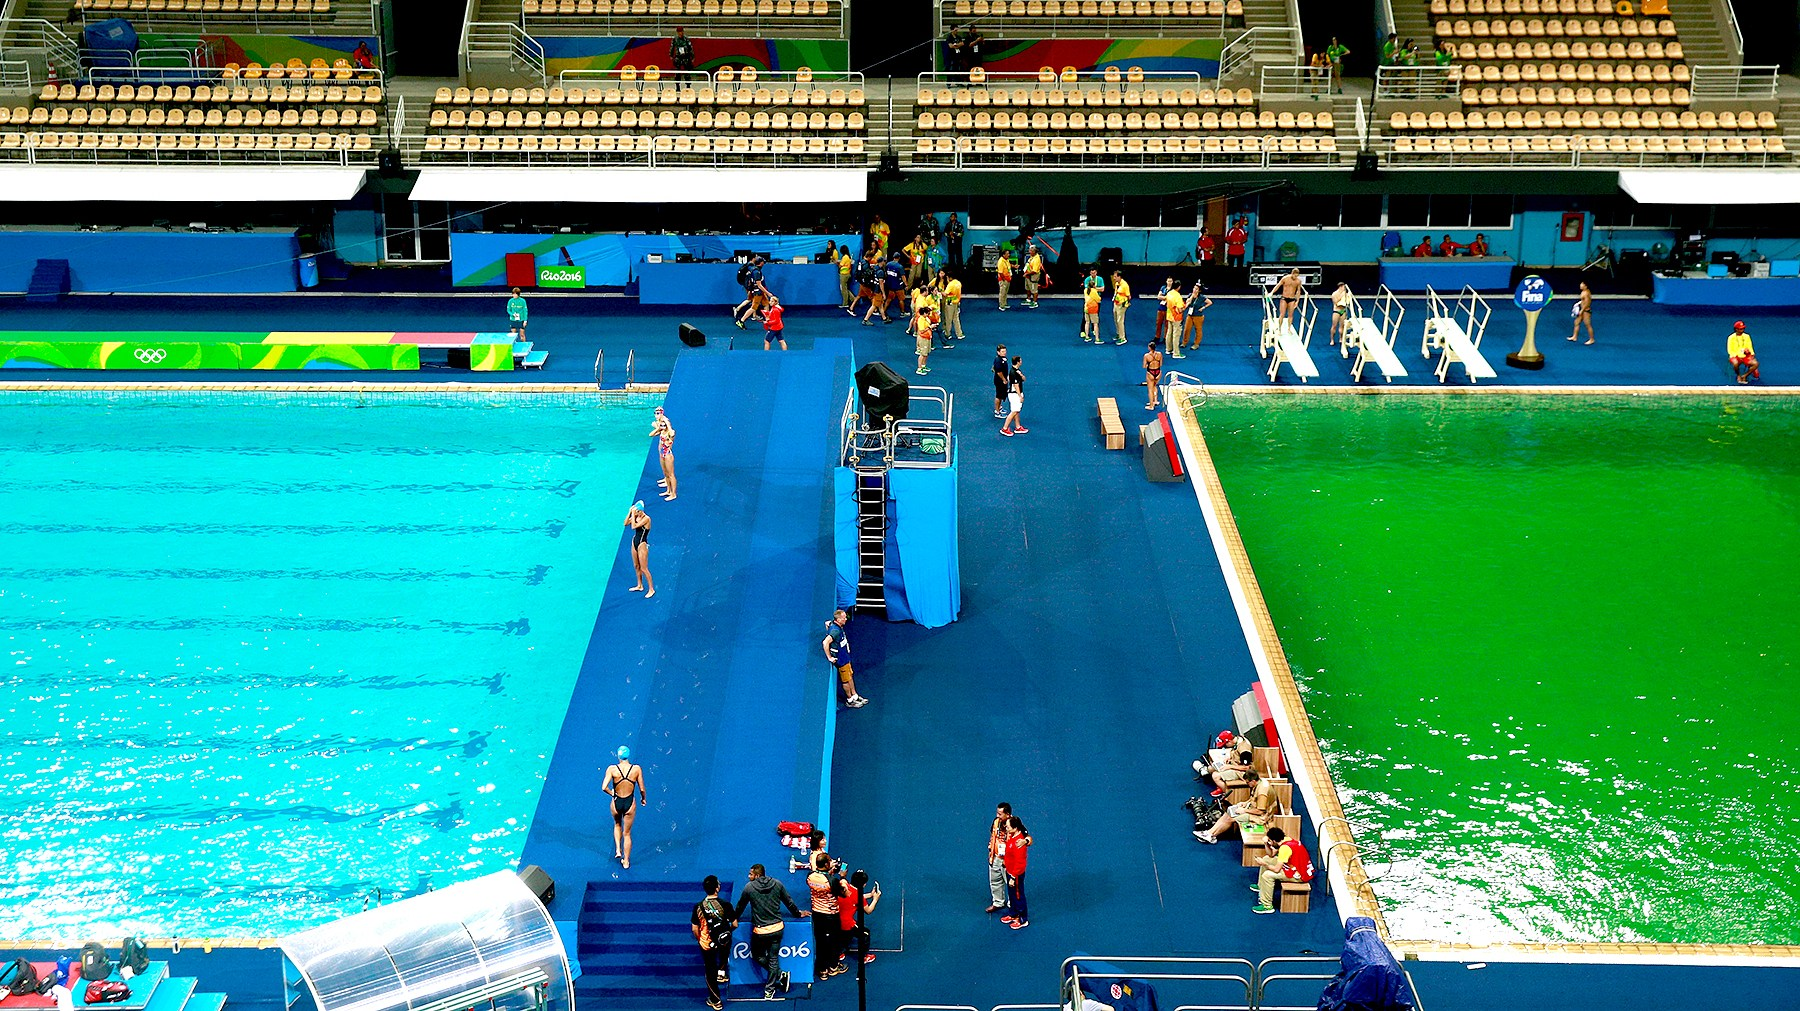 General view of the diving pool at Maria Lenk Aquatics Centre on Day 4 of the Rio 2016 Olympic Games at Maria Lenk Aquatics Centre on August 9, 2016 in Rio de Janeiro, Brazil.